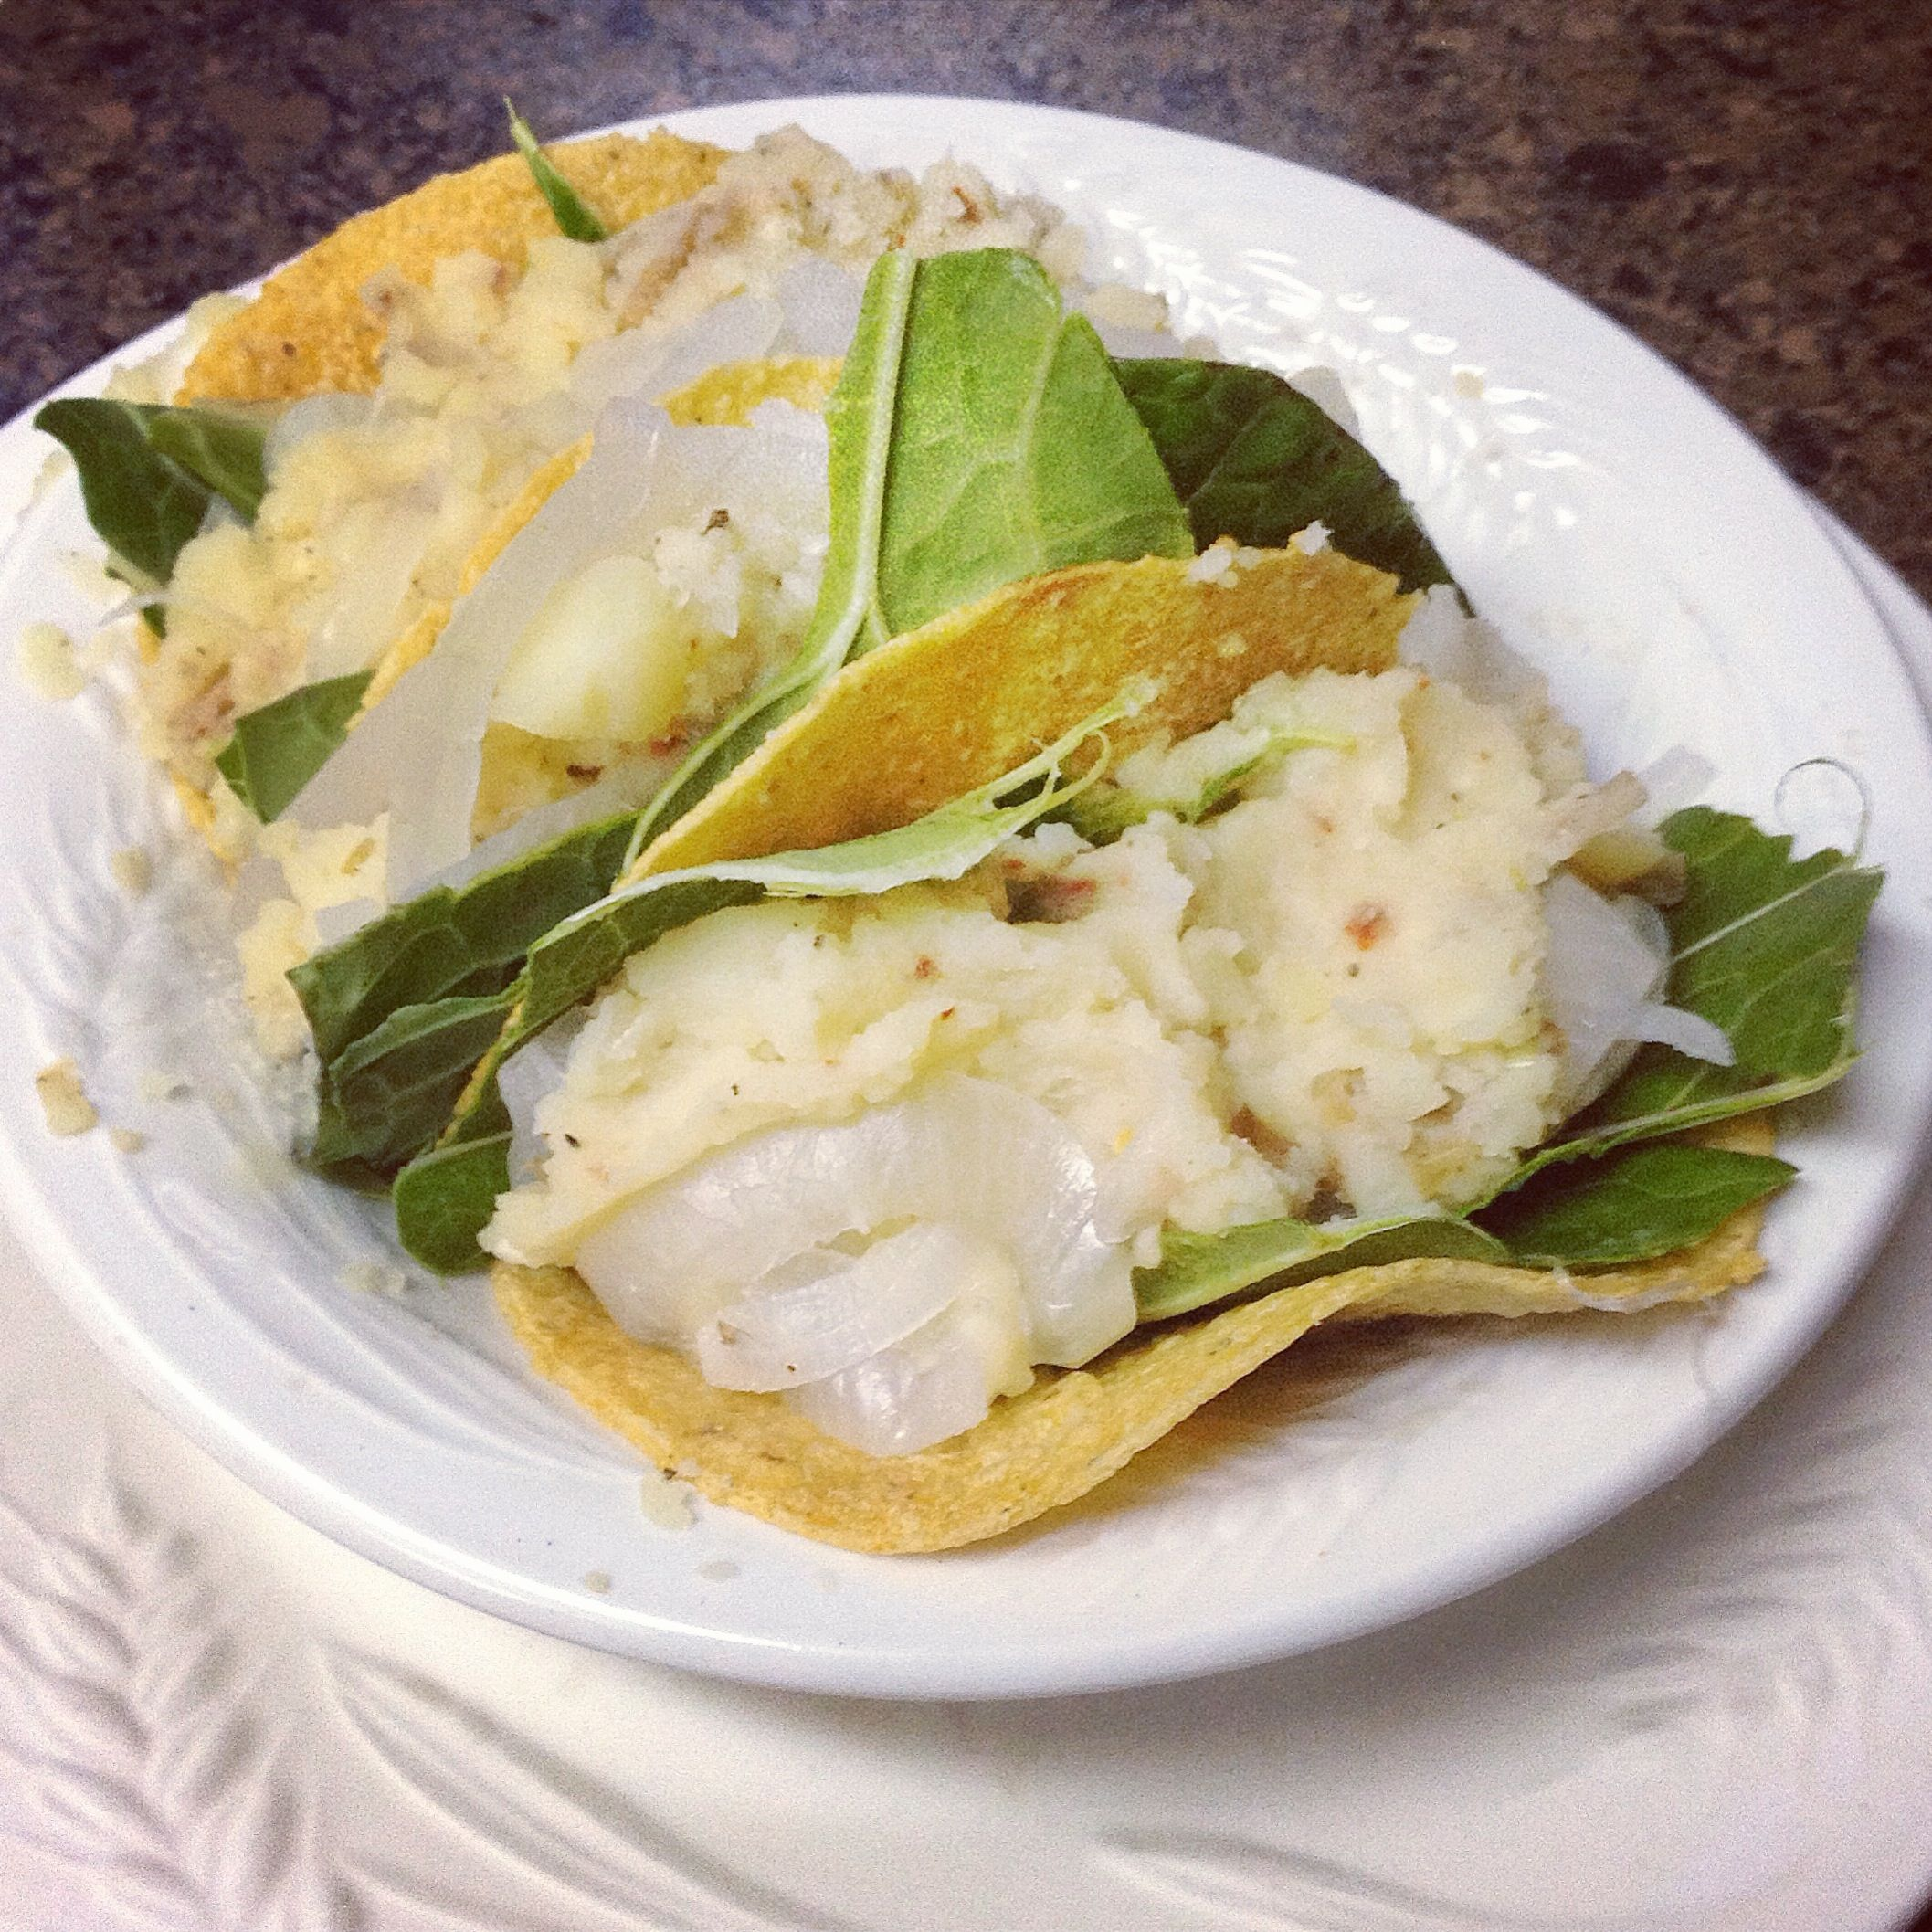 ✨ Herbal Mashed Potato Tacos ✨  3 sprouted, organic corn tortillas (small) 2 organic collard green leaves 3 cloves organic garlic, diced 1/2 tbsp organic, cold pressed olive oil 1/2 tsp organic lavender flowers 2 organic dried bay leaves 1/2 tsp organic chili pepper 1/4 tsp sun dried sea salt 1/2 tsp fresh ground organic black pepper 1/8 cup fresh water  Instructions are in the blog    Check out the blog and new cookbook for free!: Veganbusybee.tumblr.com